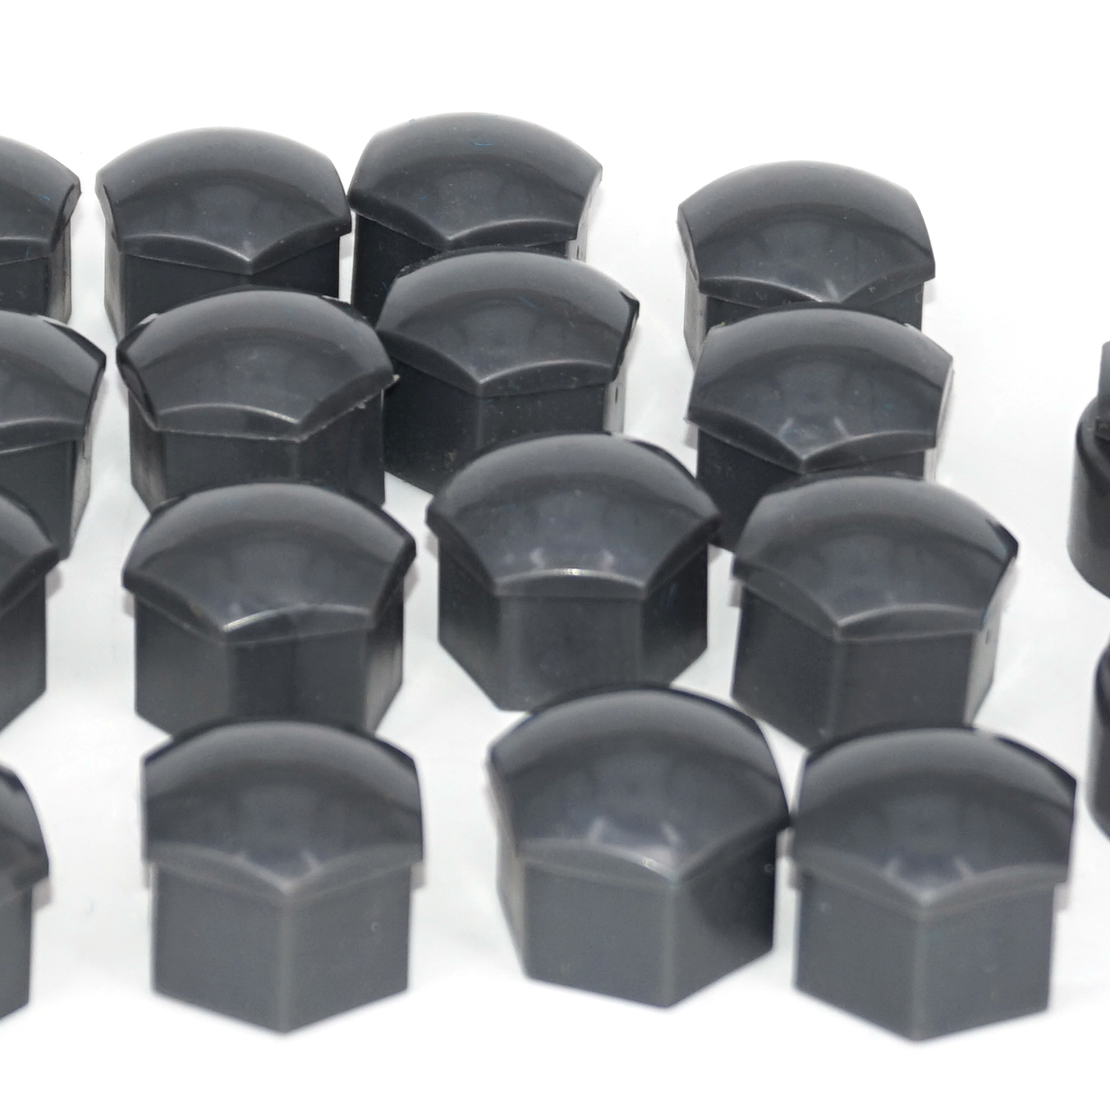 20pcs Wheel Lug Nut Center Cover 4ps Locking Types Caps